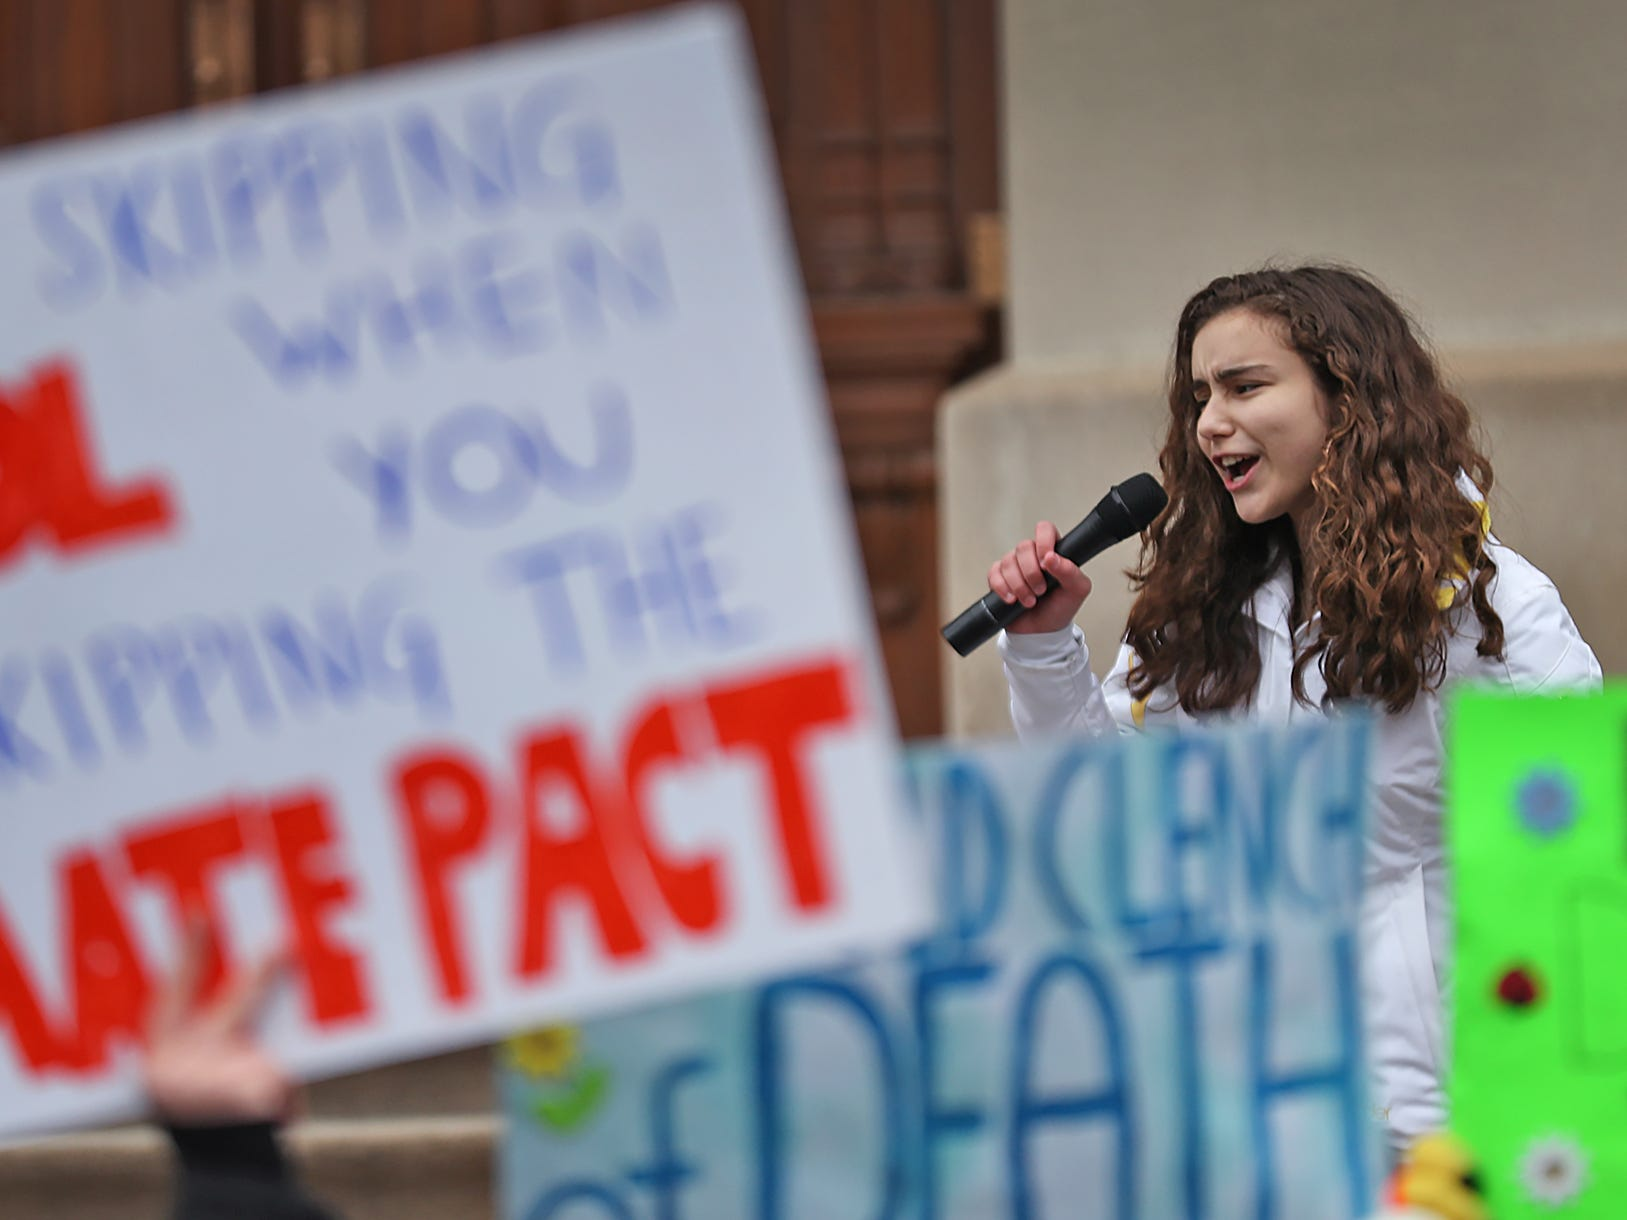 Carmel High School sophomore Isabella Fallahi leads students in chants, as they come together during the Indiana part of the international Climate Strike, Friday, March 15, 2019, held outside the Indiana Statehouse.  Following in the footsteps of 16-year-old Swedish trailblazer, Greta Thunberg, students around the world are skipping school to protest government inaction on climate change.  The Indiana protest brought over 250 participants.